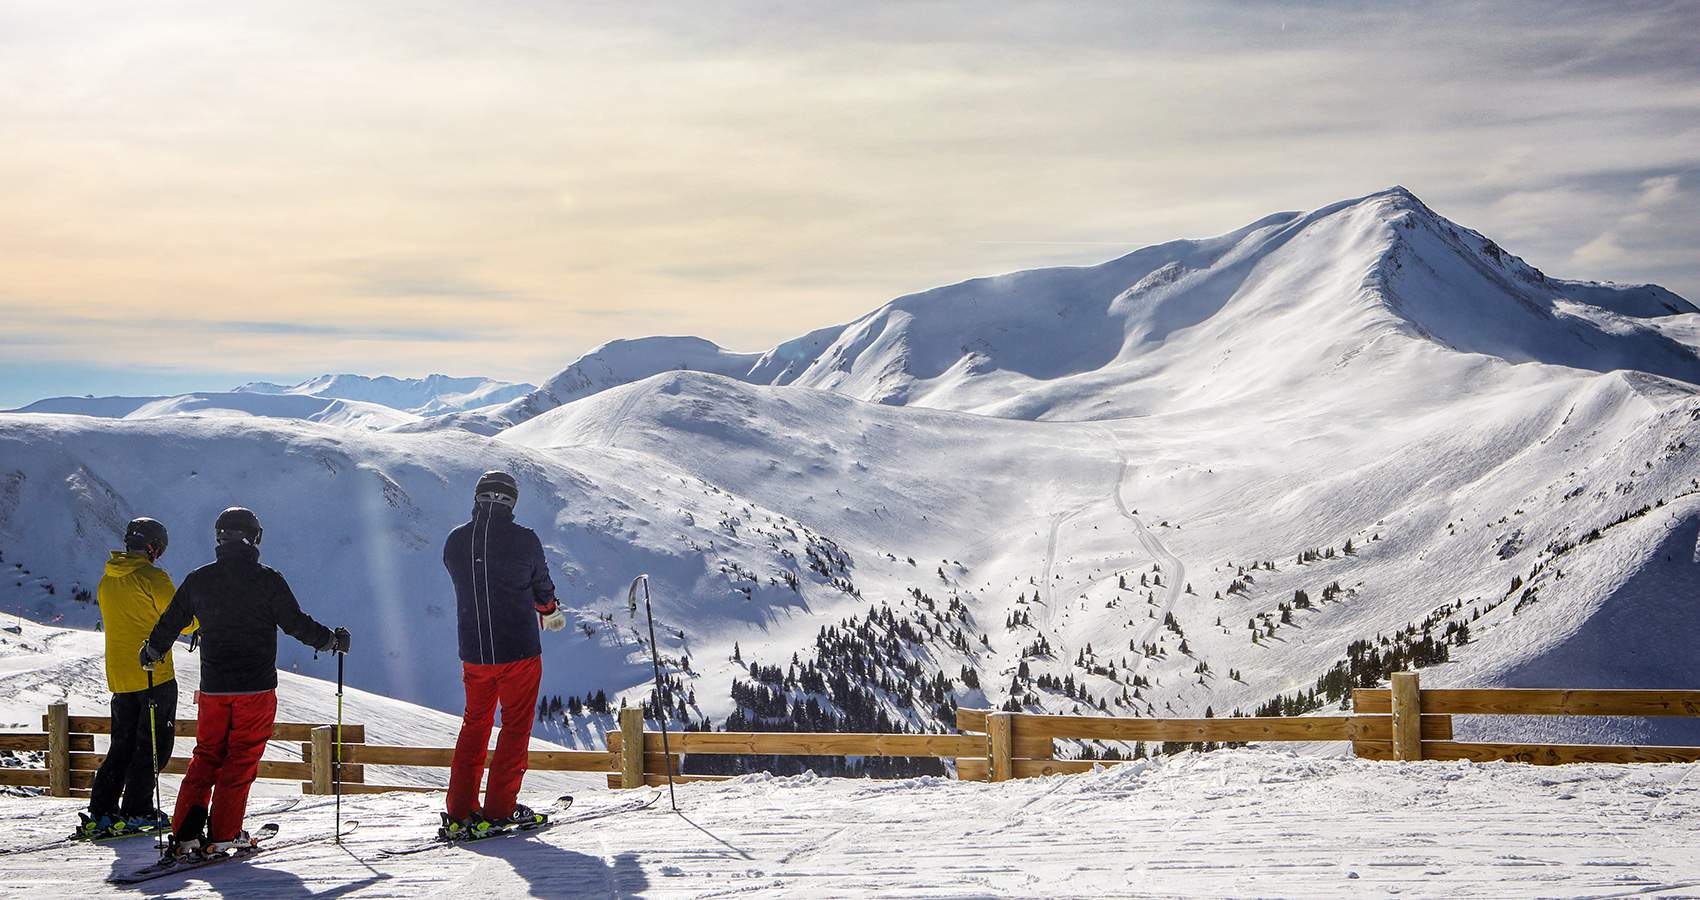 Skiing Holidays to The French Alps